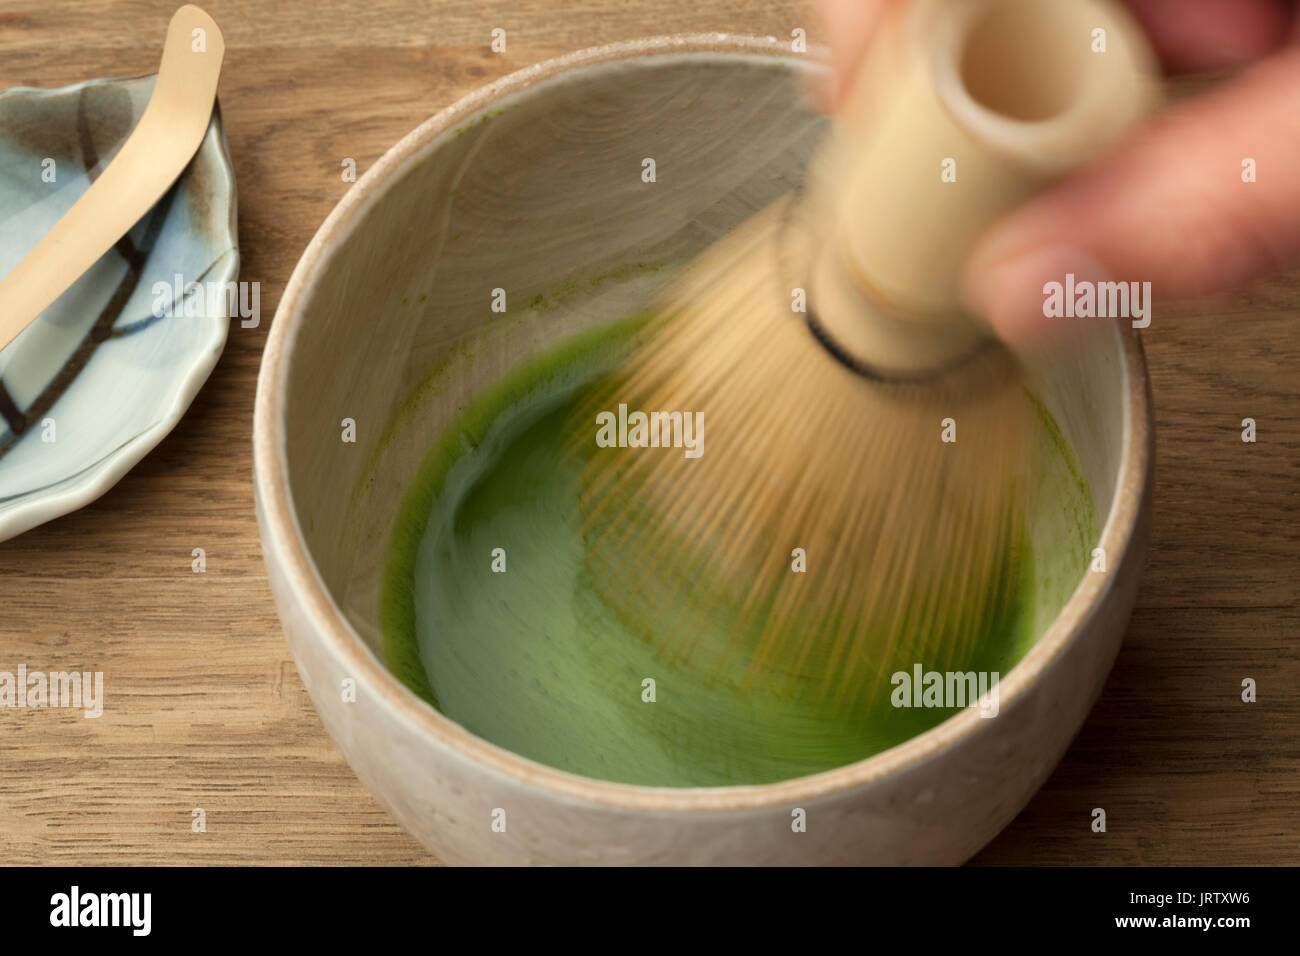 Preparing a bowl of matcha tea with a tea whisk - Stock Image